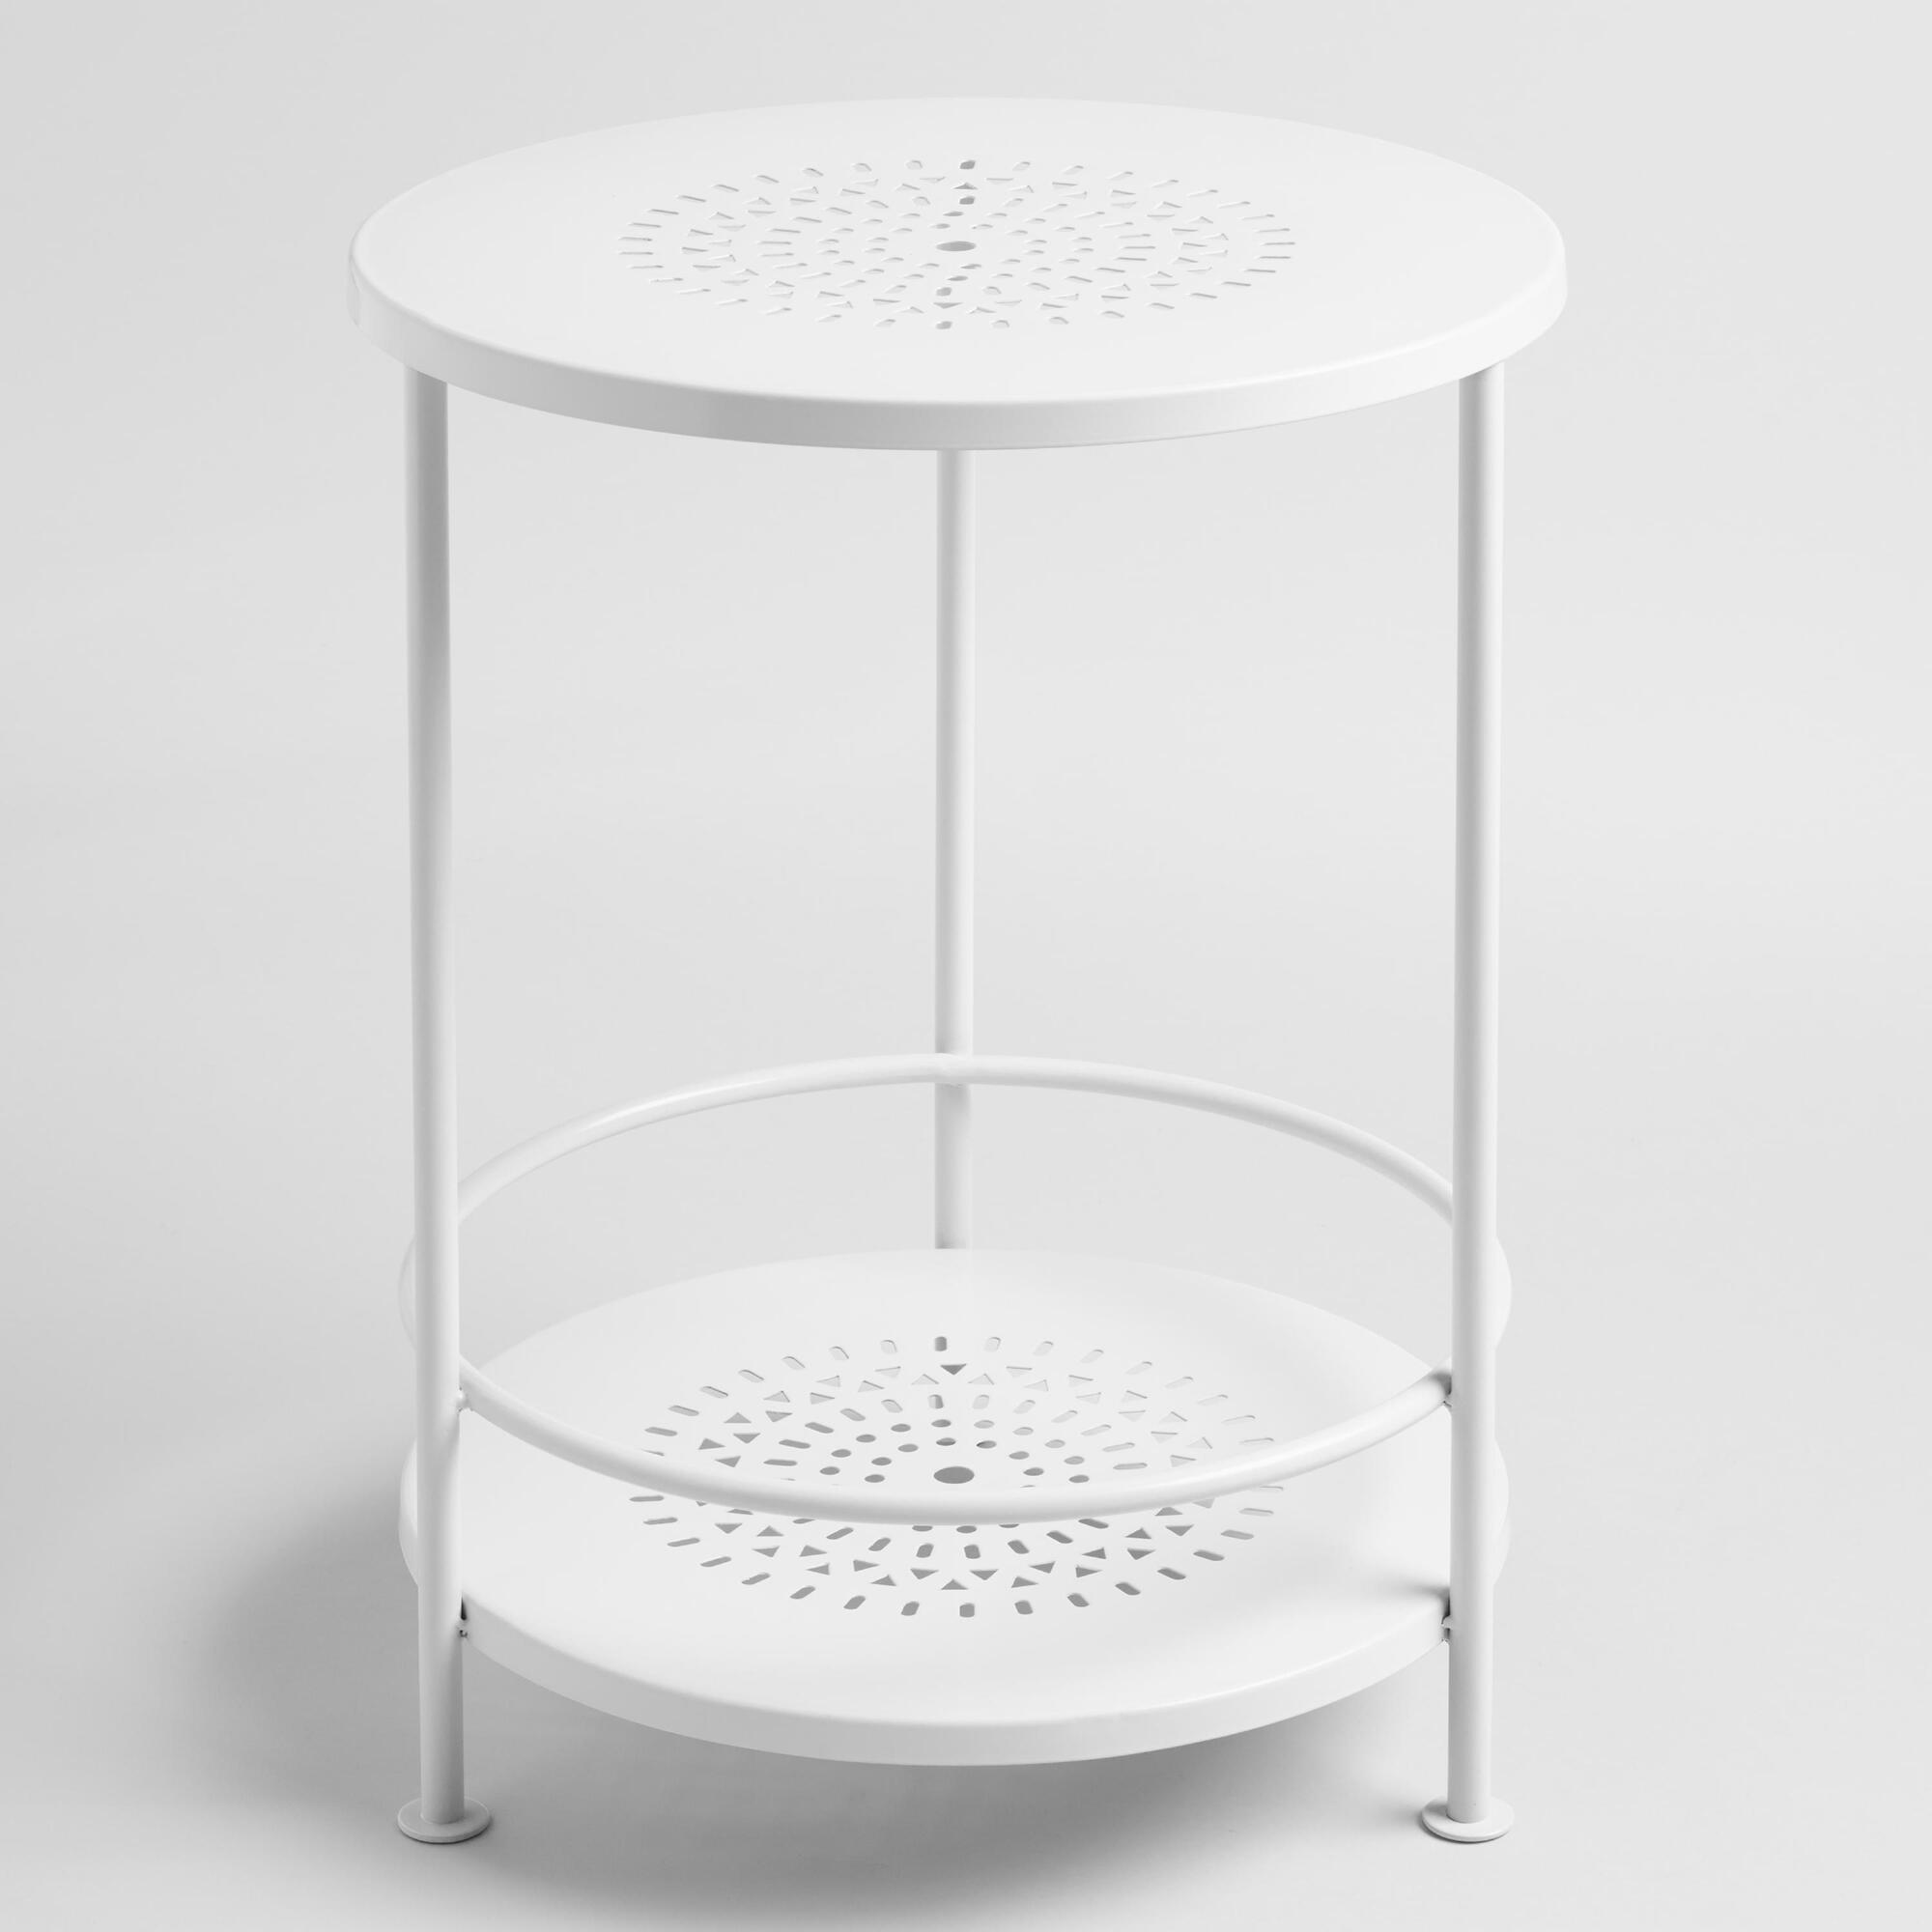 white metal marisol outdoor patio accent table world market garden gold knobs ashley furniture lift top coffee wicker dining set rustic end tables wine rack towel holder farm